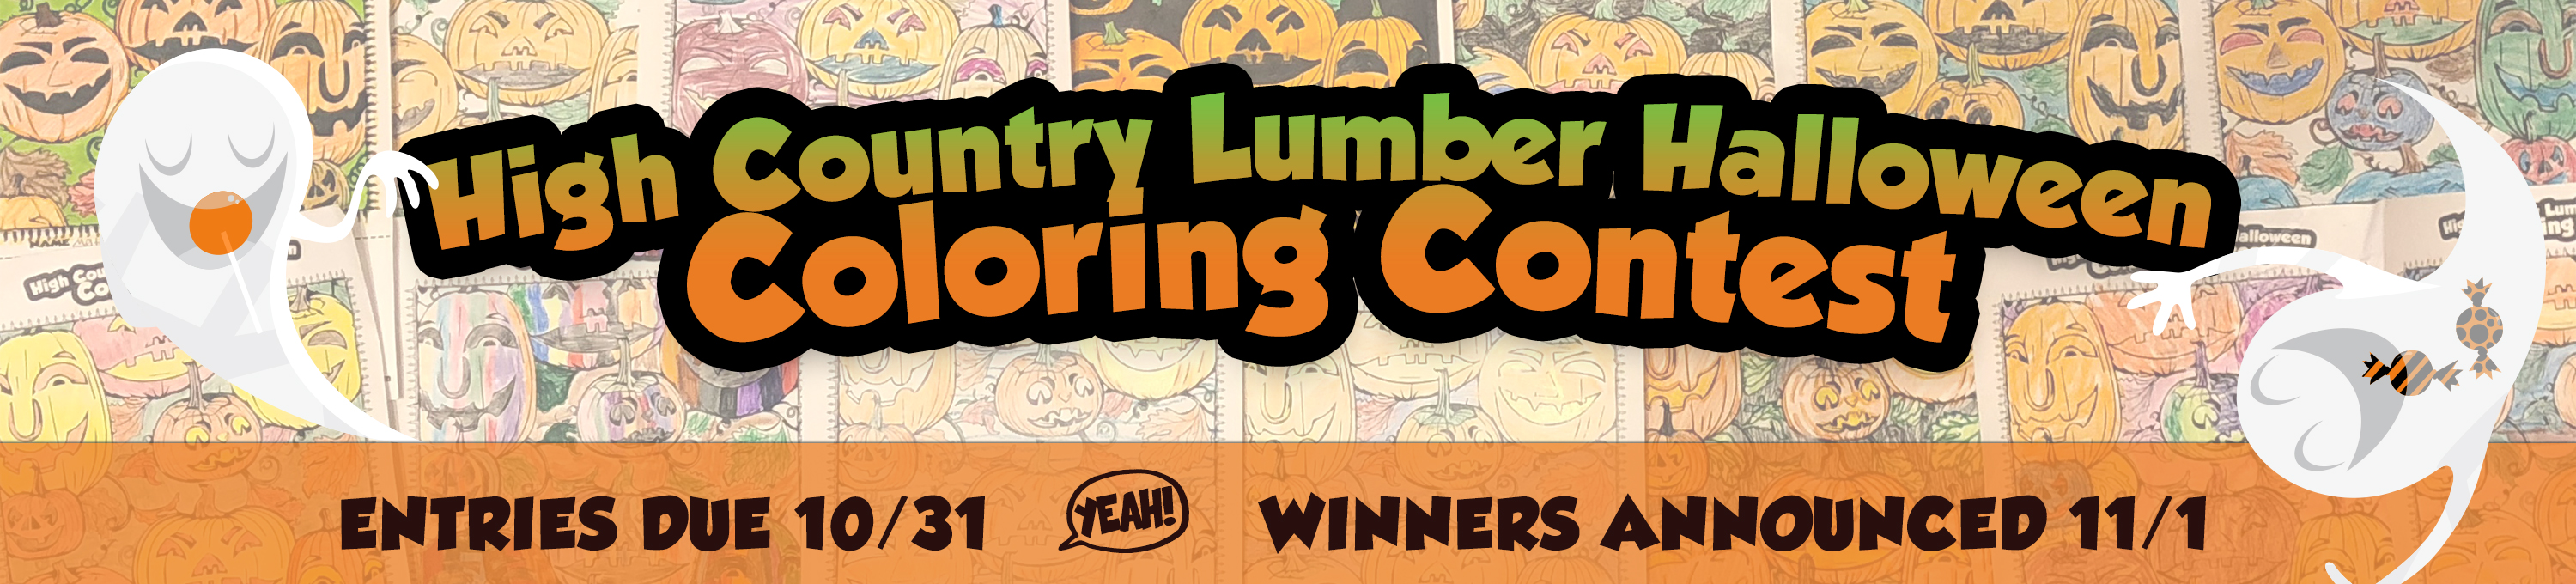 High Country Lumber Coloring Contest